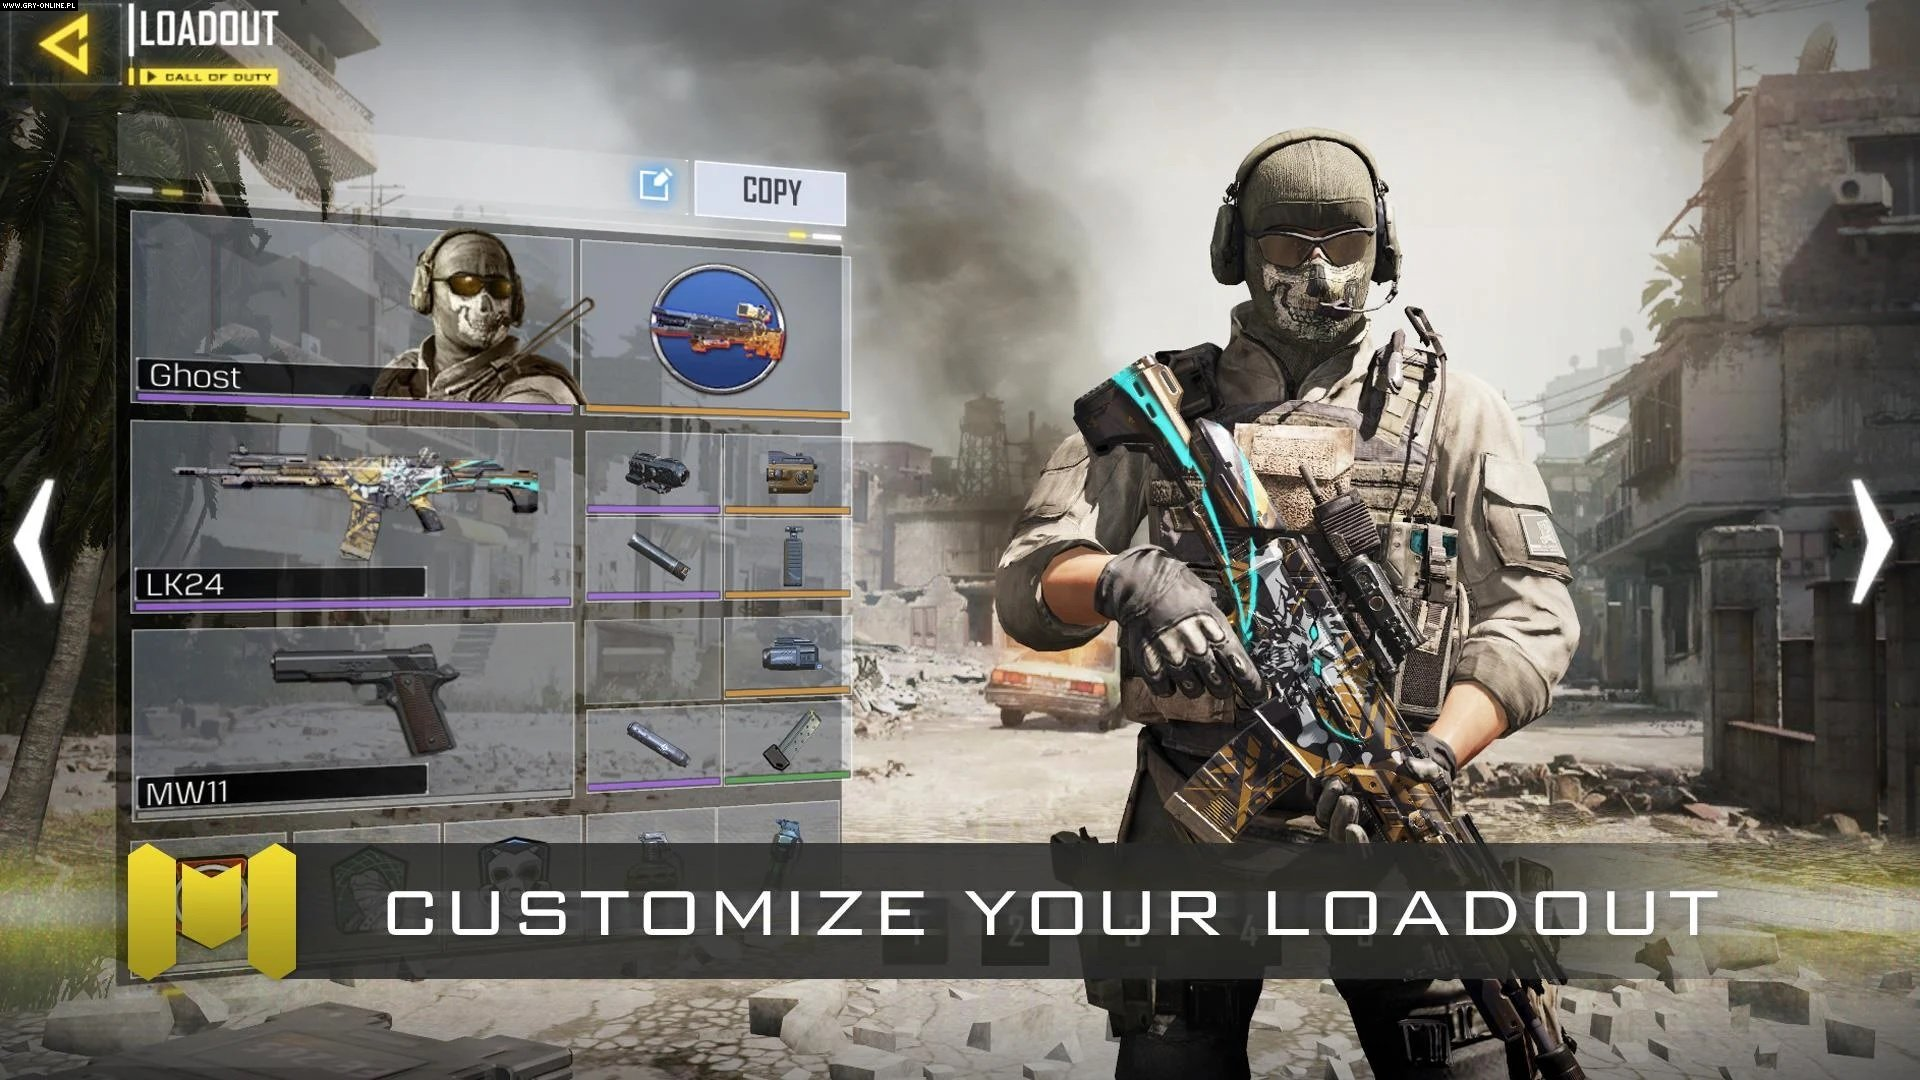 Call of Duty: Mobile iOS, AND Games Image 1/5, Tencent, Activision Blizzard